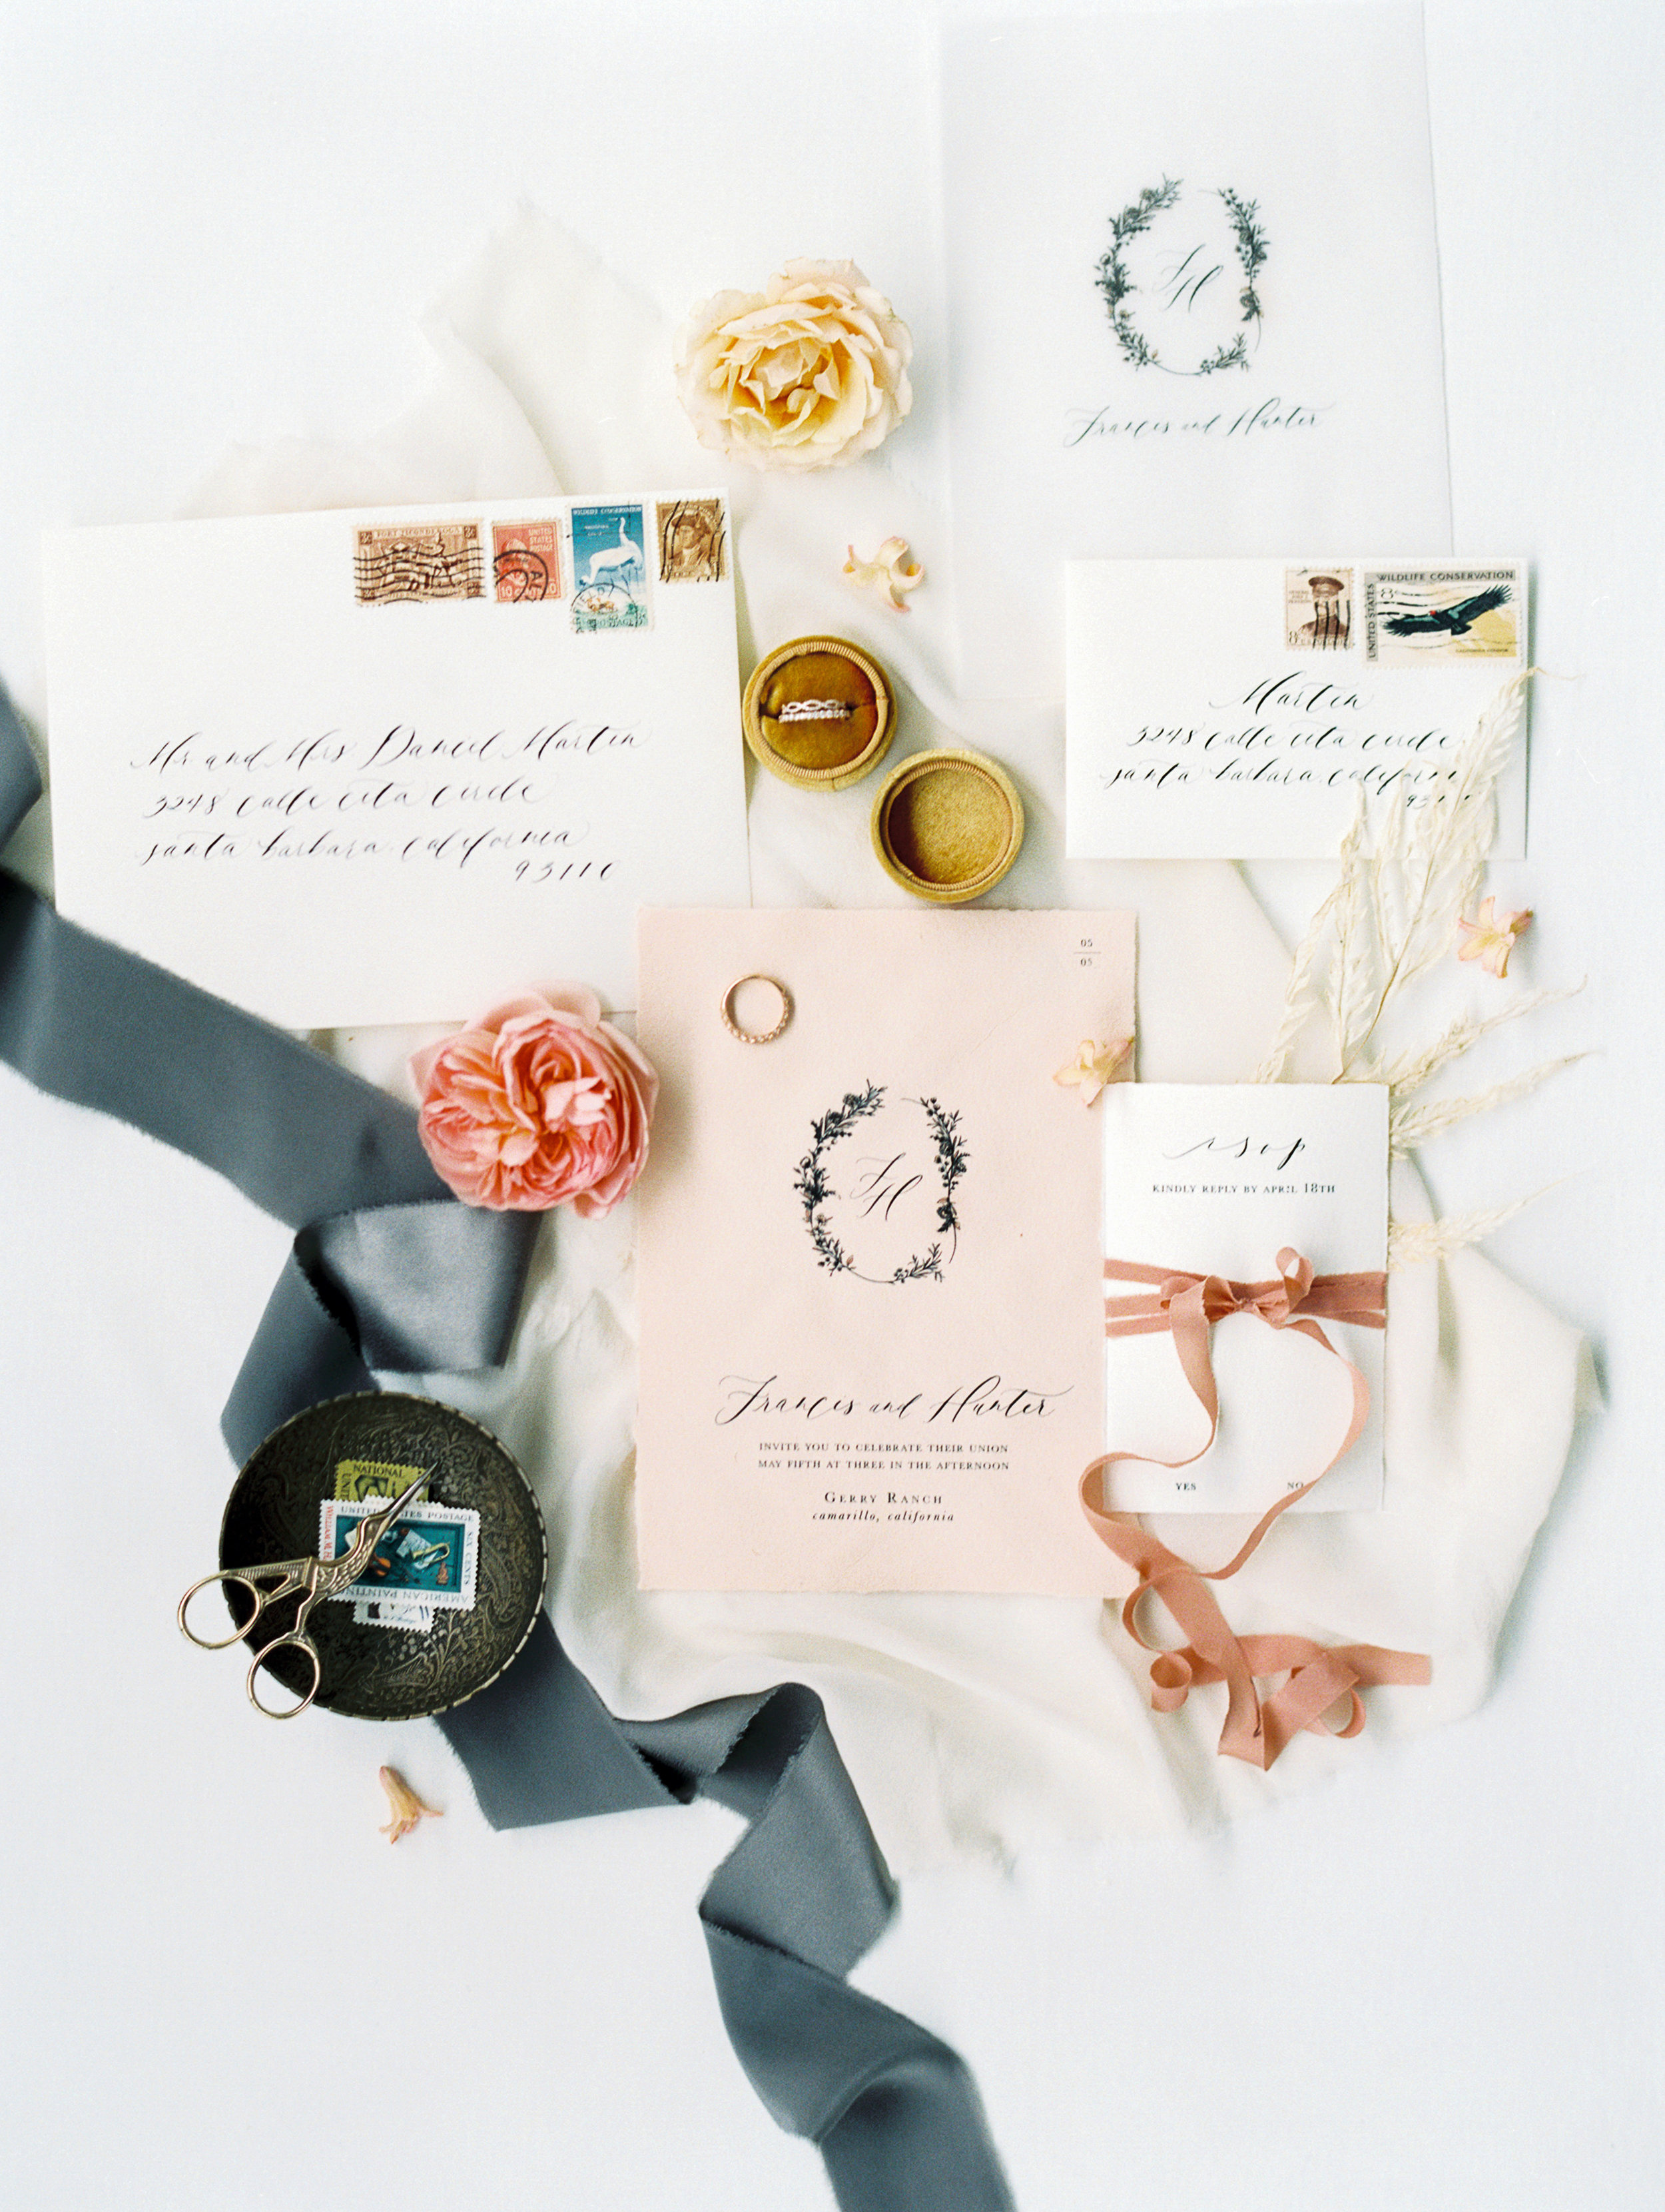 Flowy silk ribbons and linens for romantic wedding invitation calligraphy flatlay idea